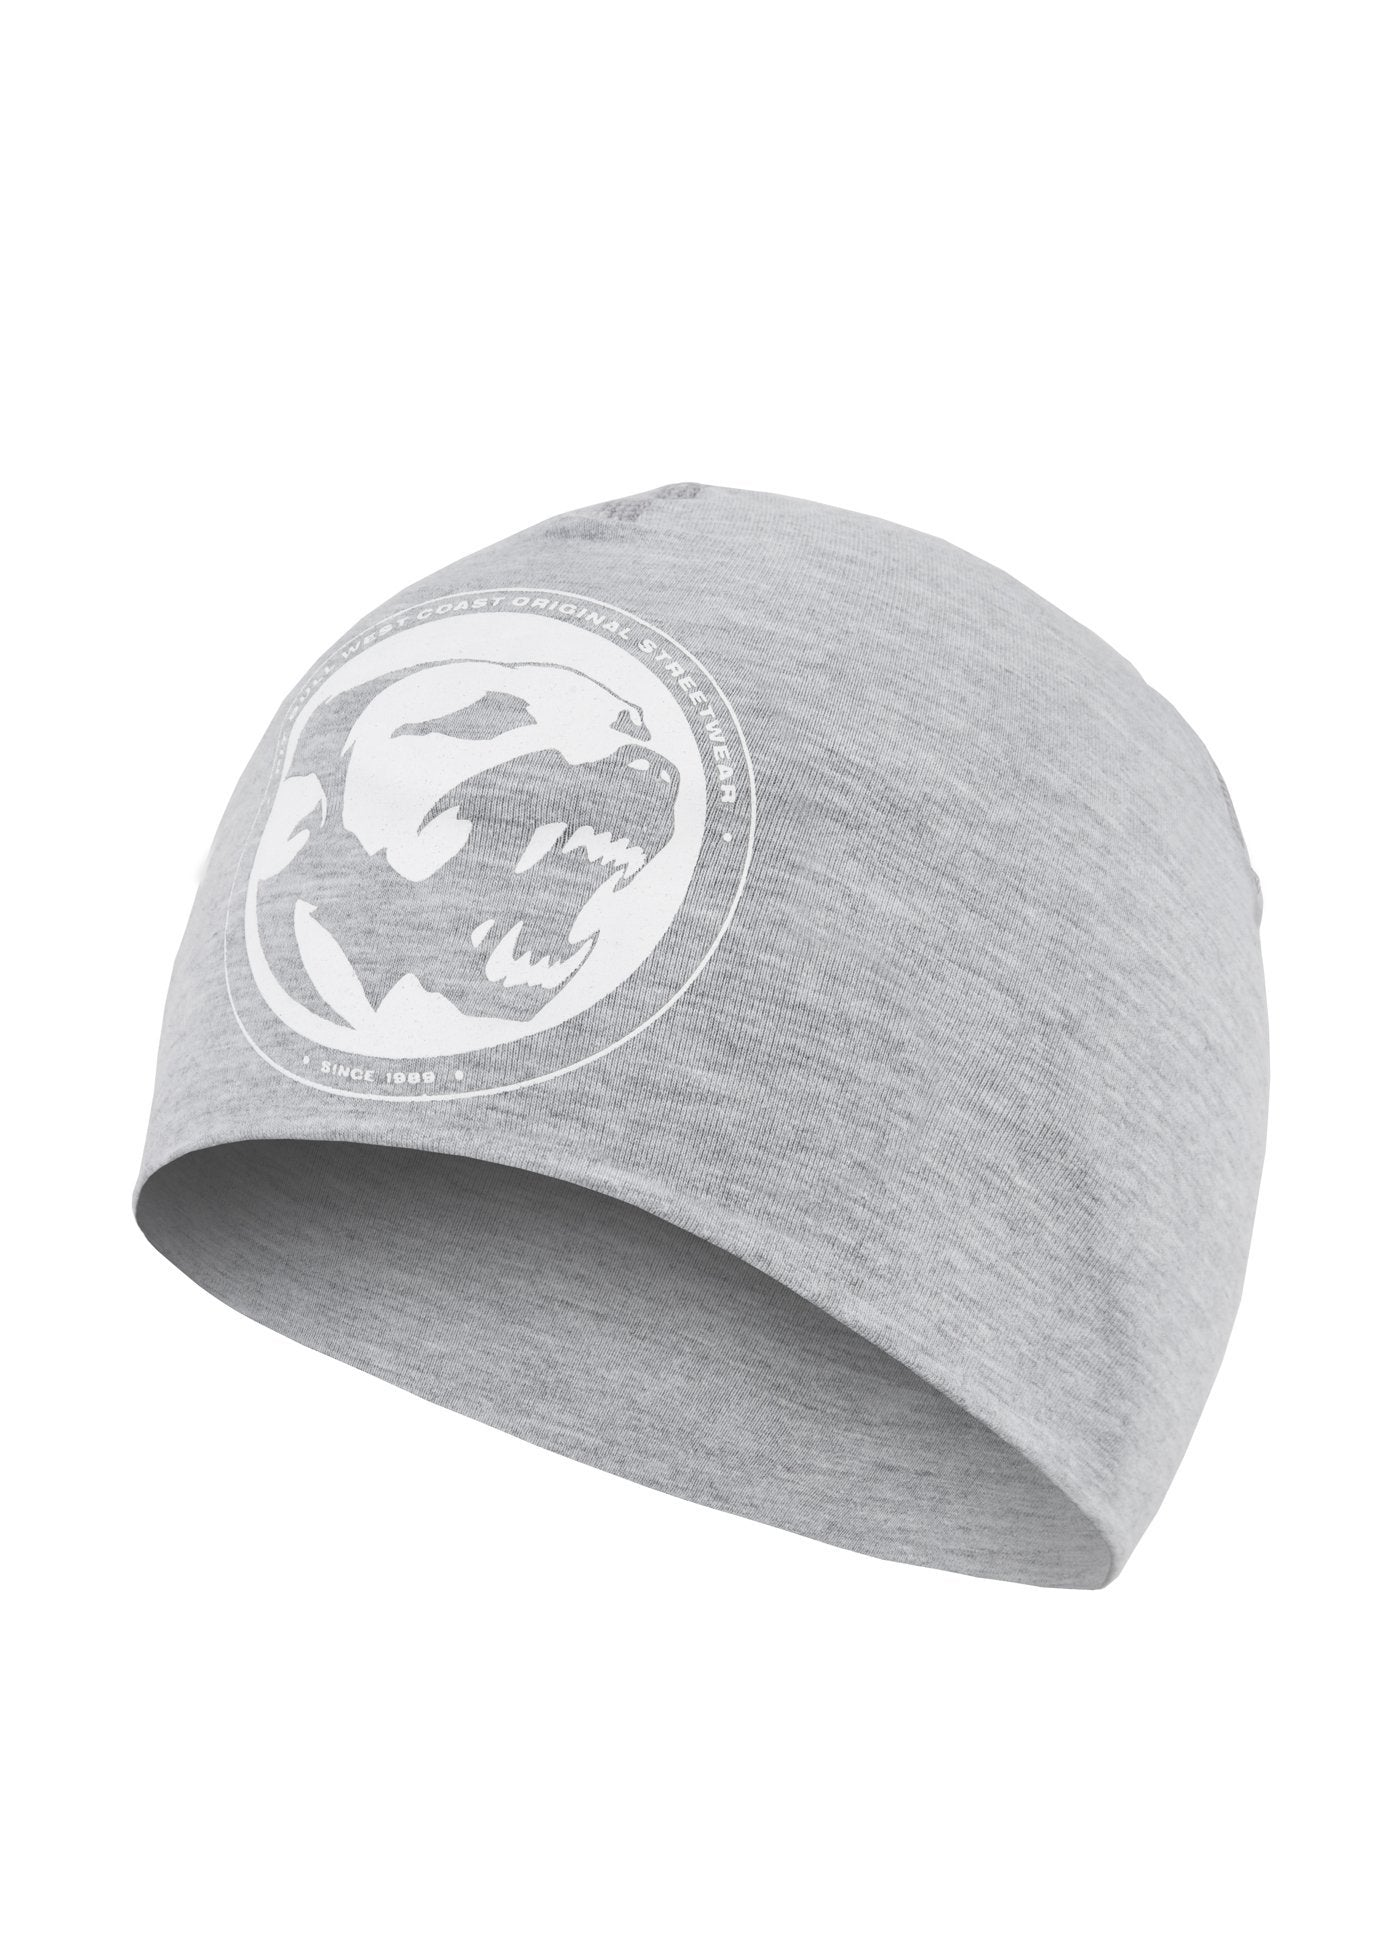 CLASSIC DOG CCOMPRESSION BEANIE GREY MLG - Pitbull West Coast U.S.A.